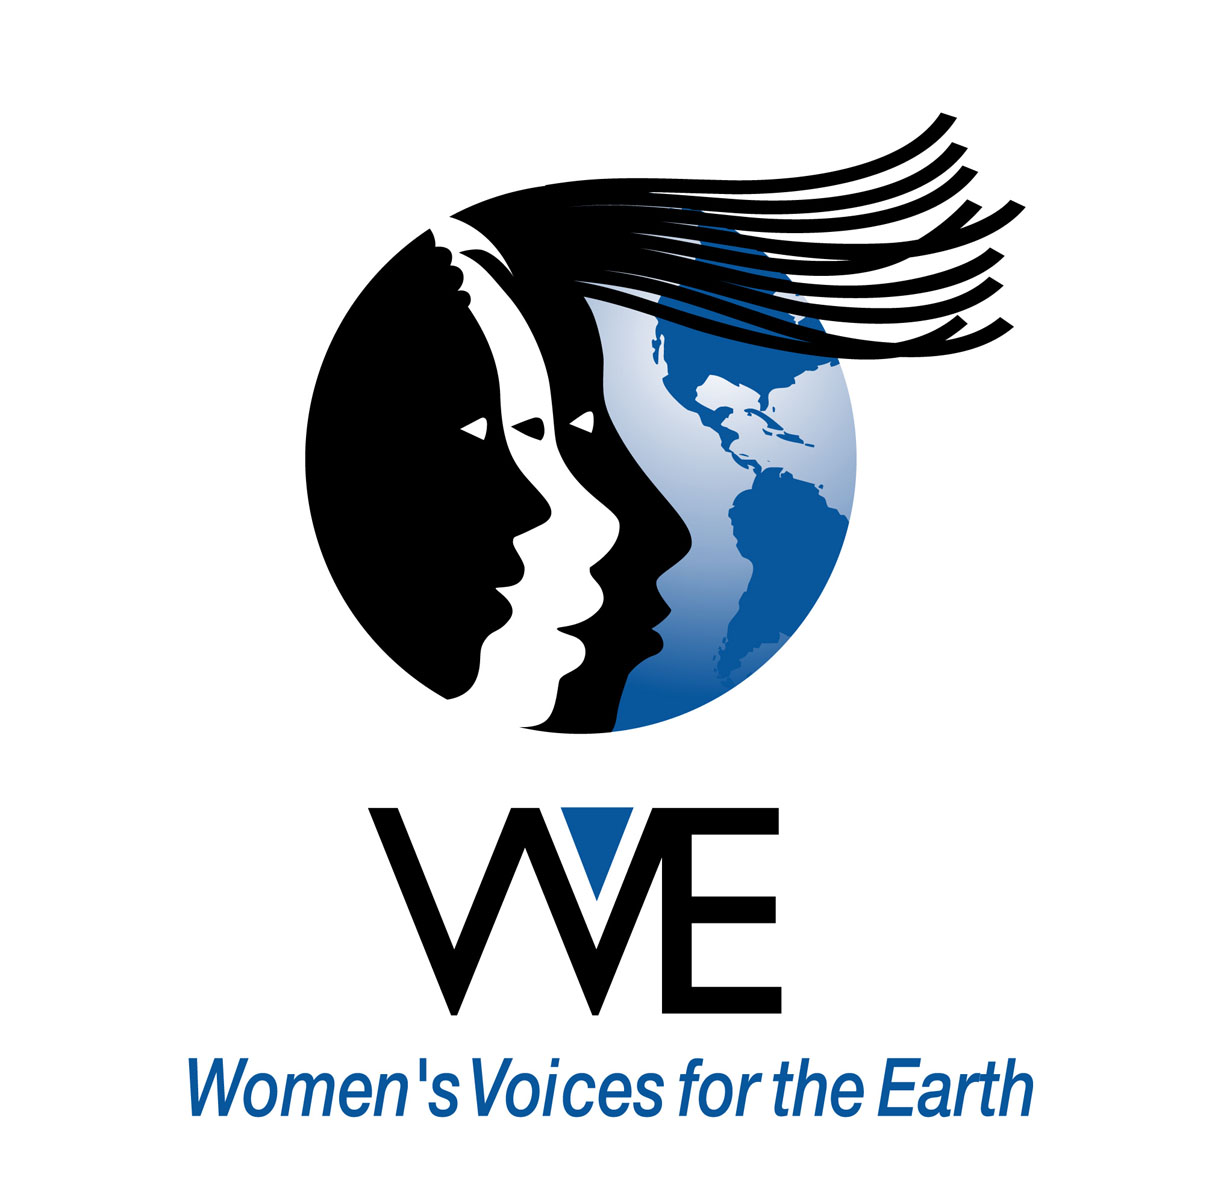 Women?s Voices for the Earth logo